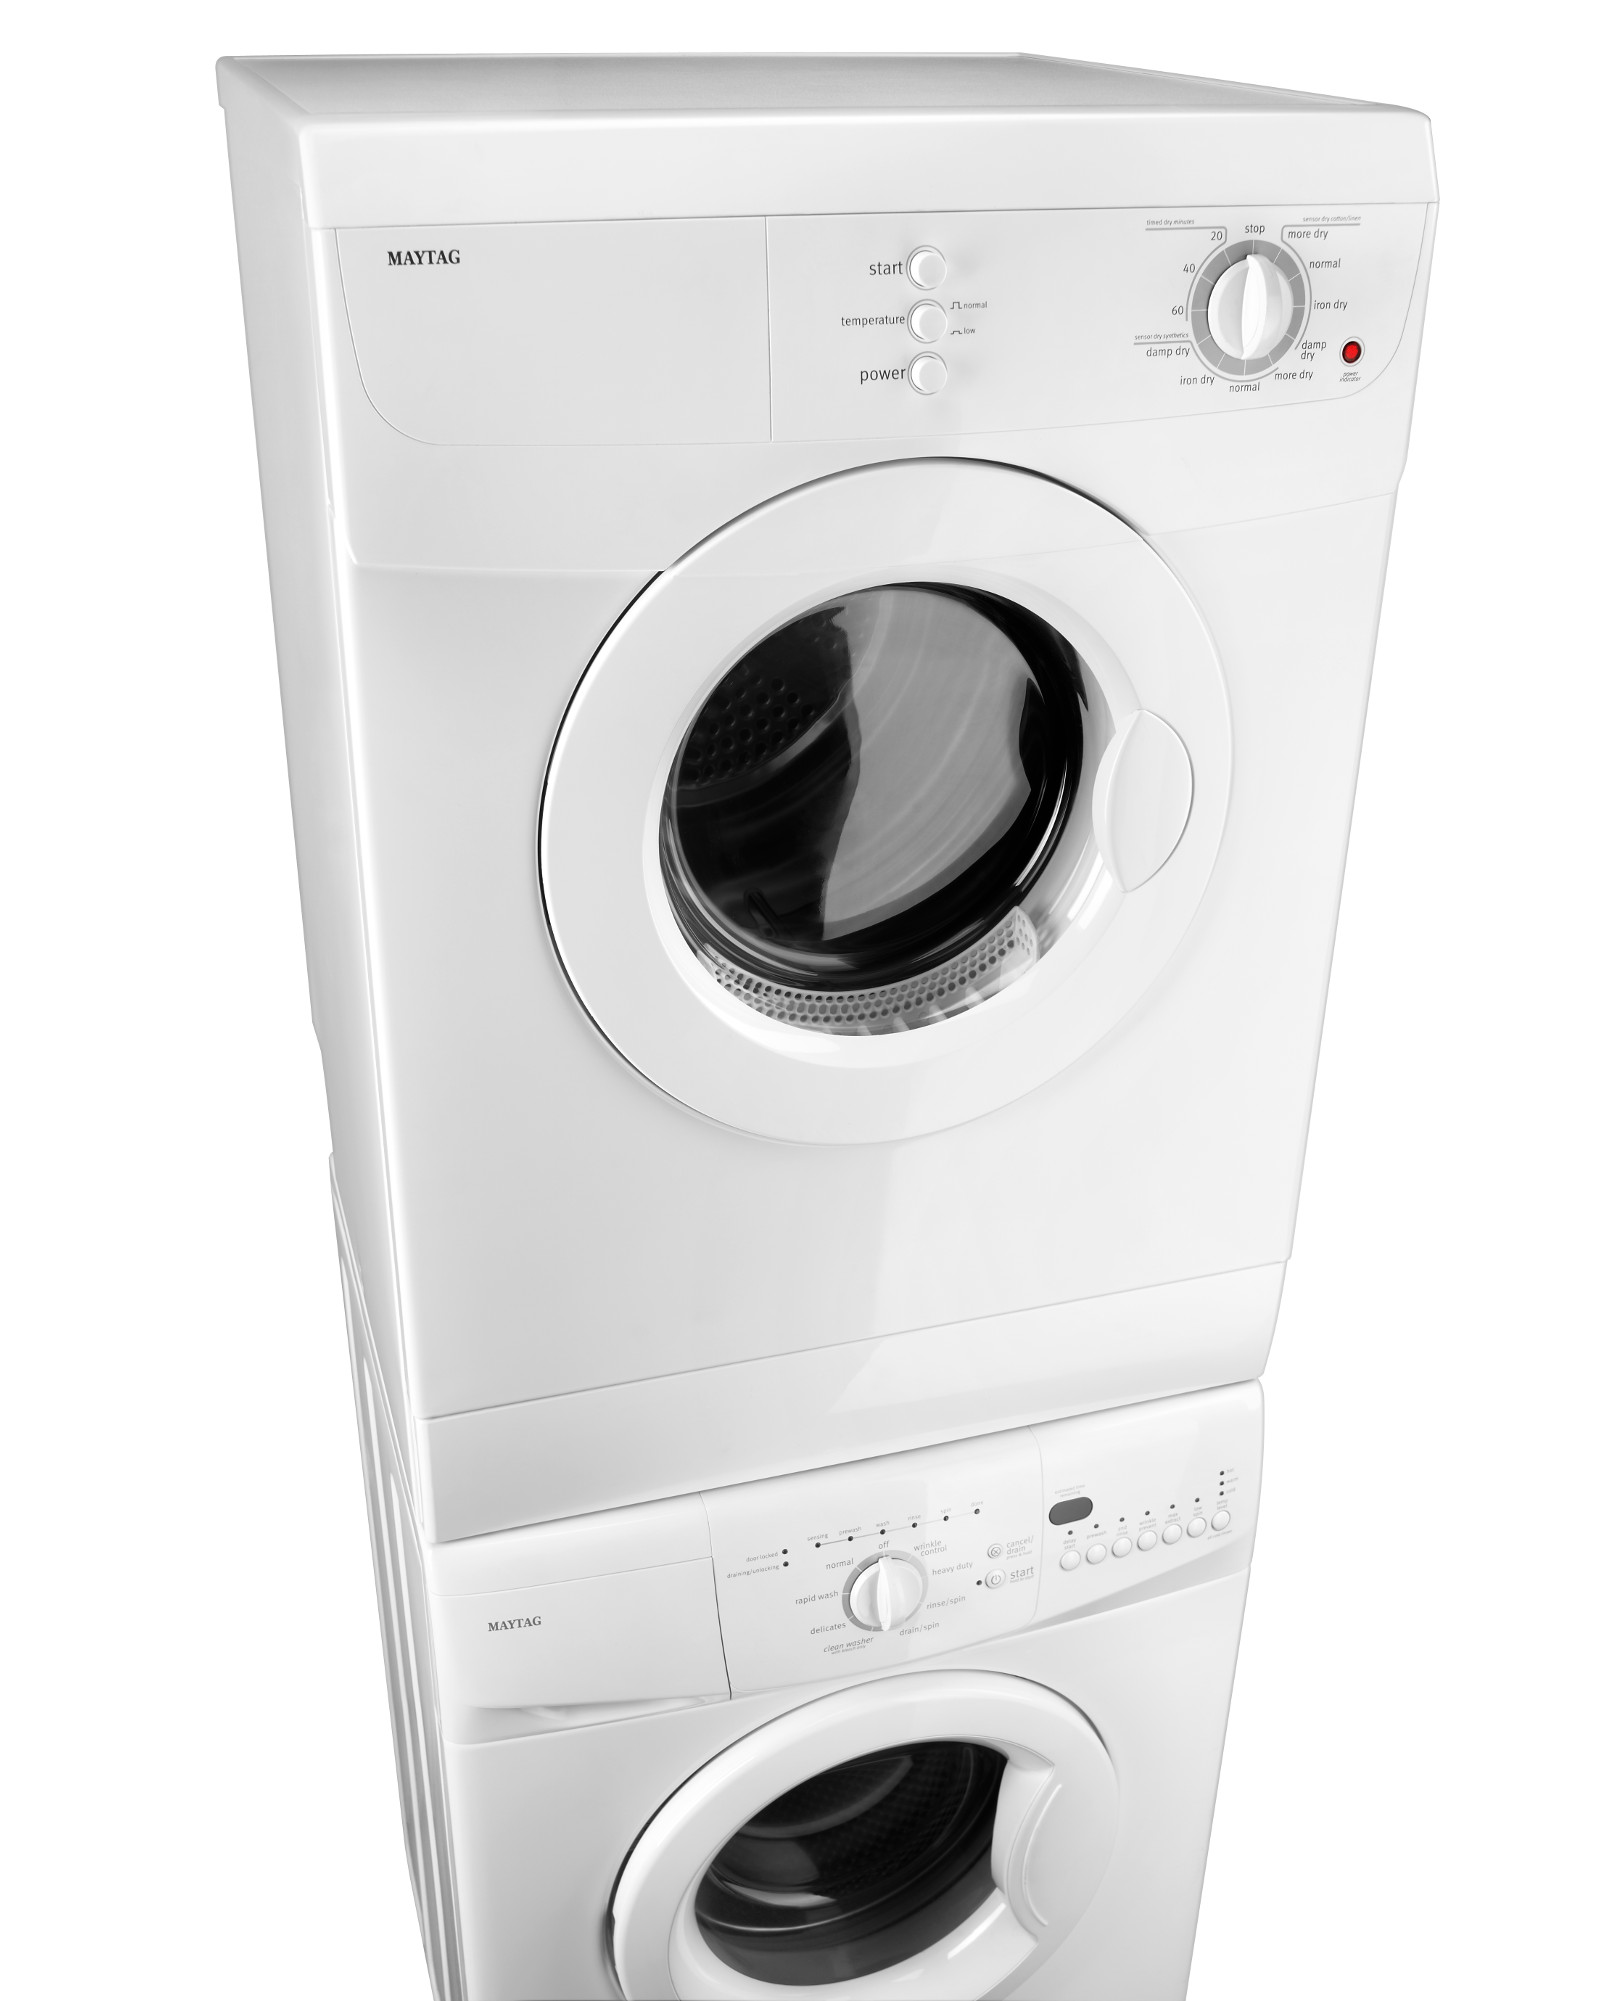 Maytag 3.8 cu. ft. Compact Electric Dryer - White